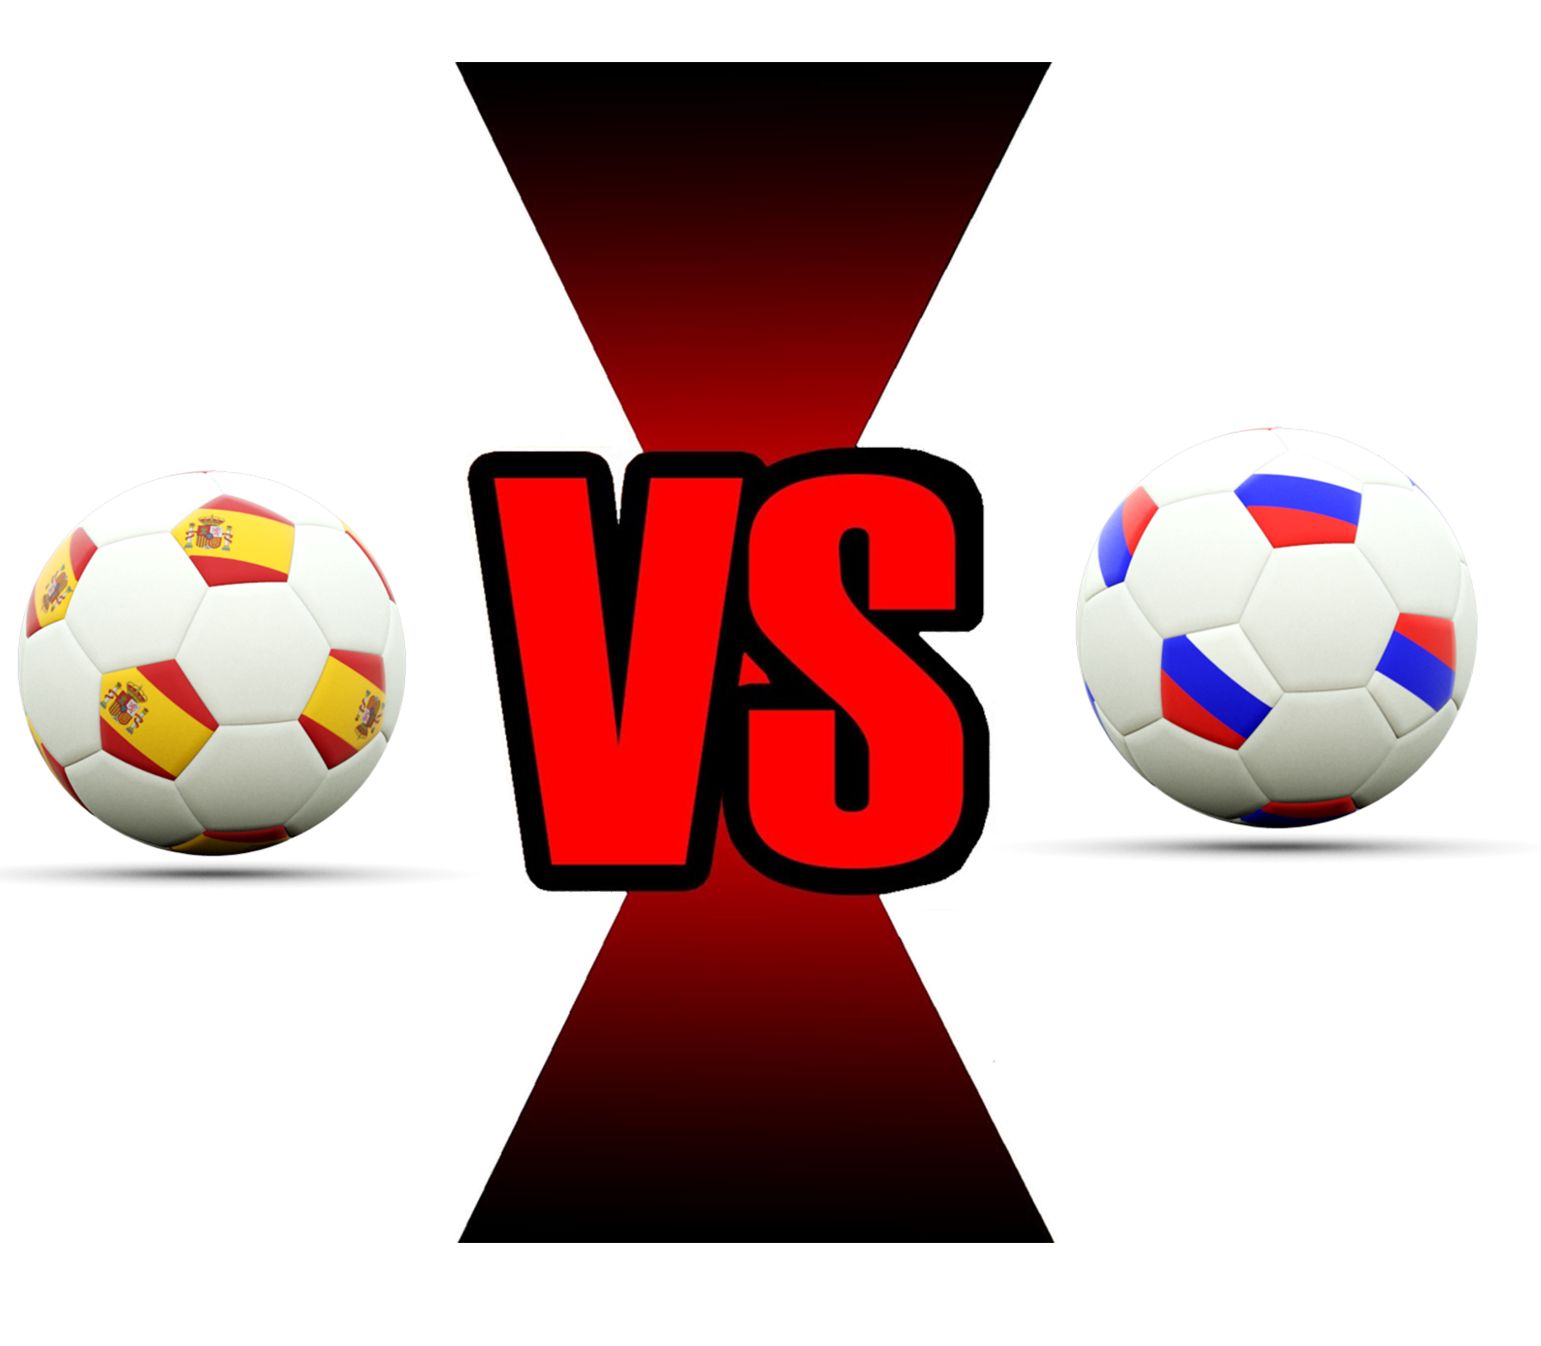 Fifa World Cup 2018 Spain Vs Russia PNG Image